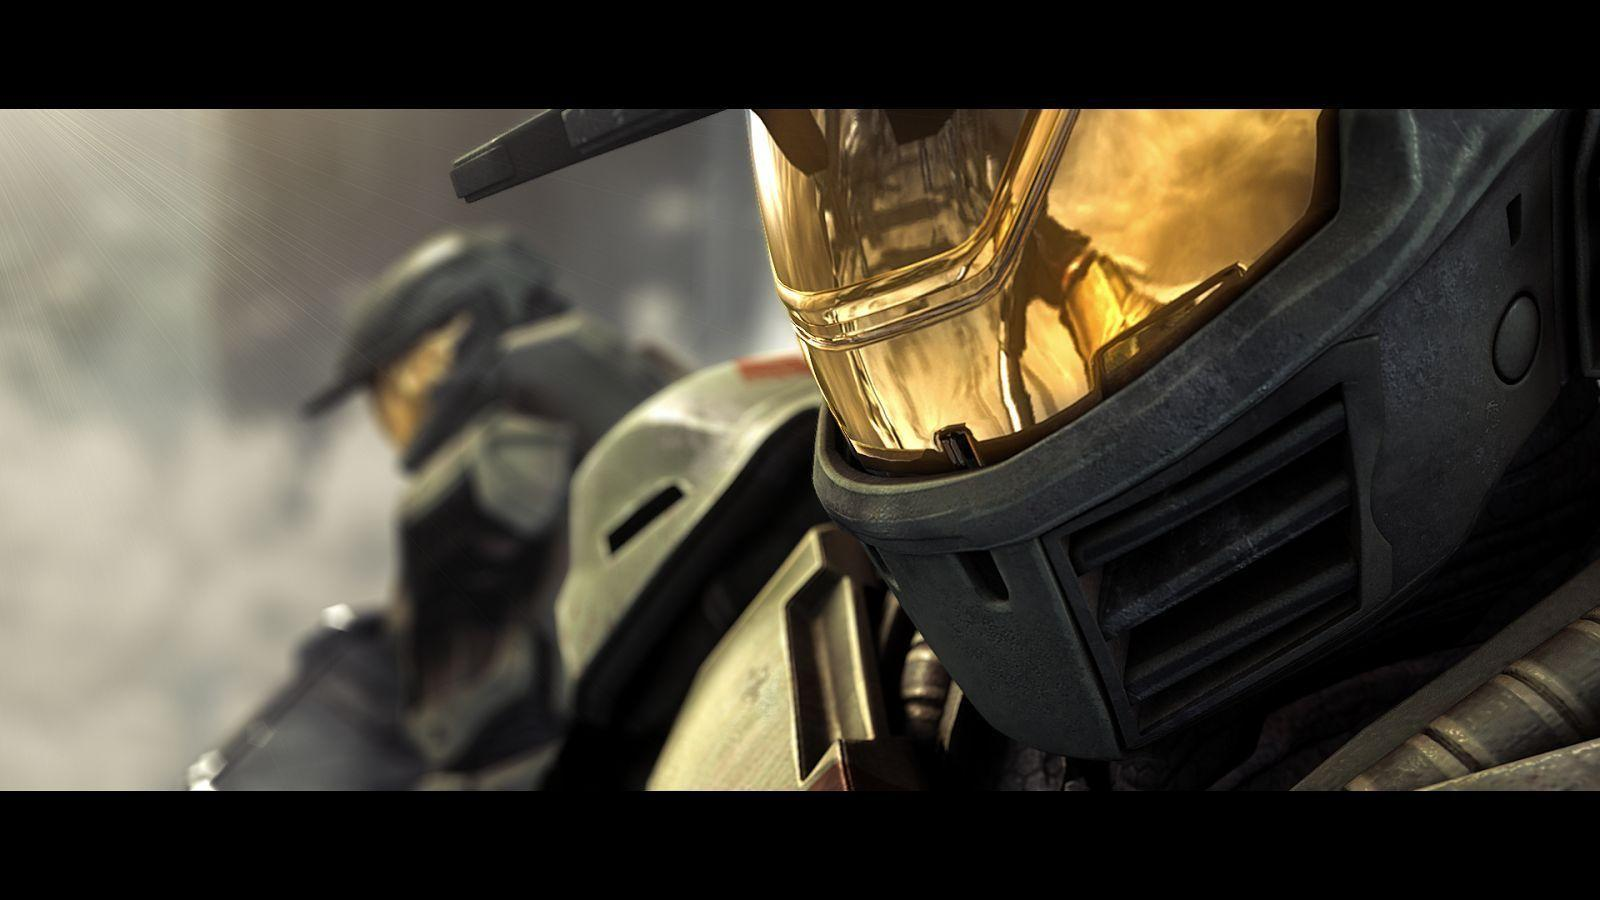 Halo Reach Wallpapers 1080p Wallpaper Cave